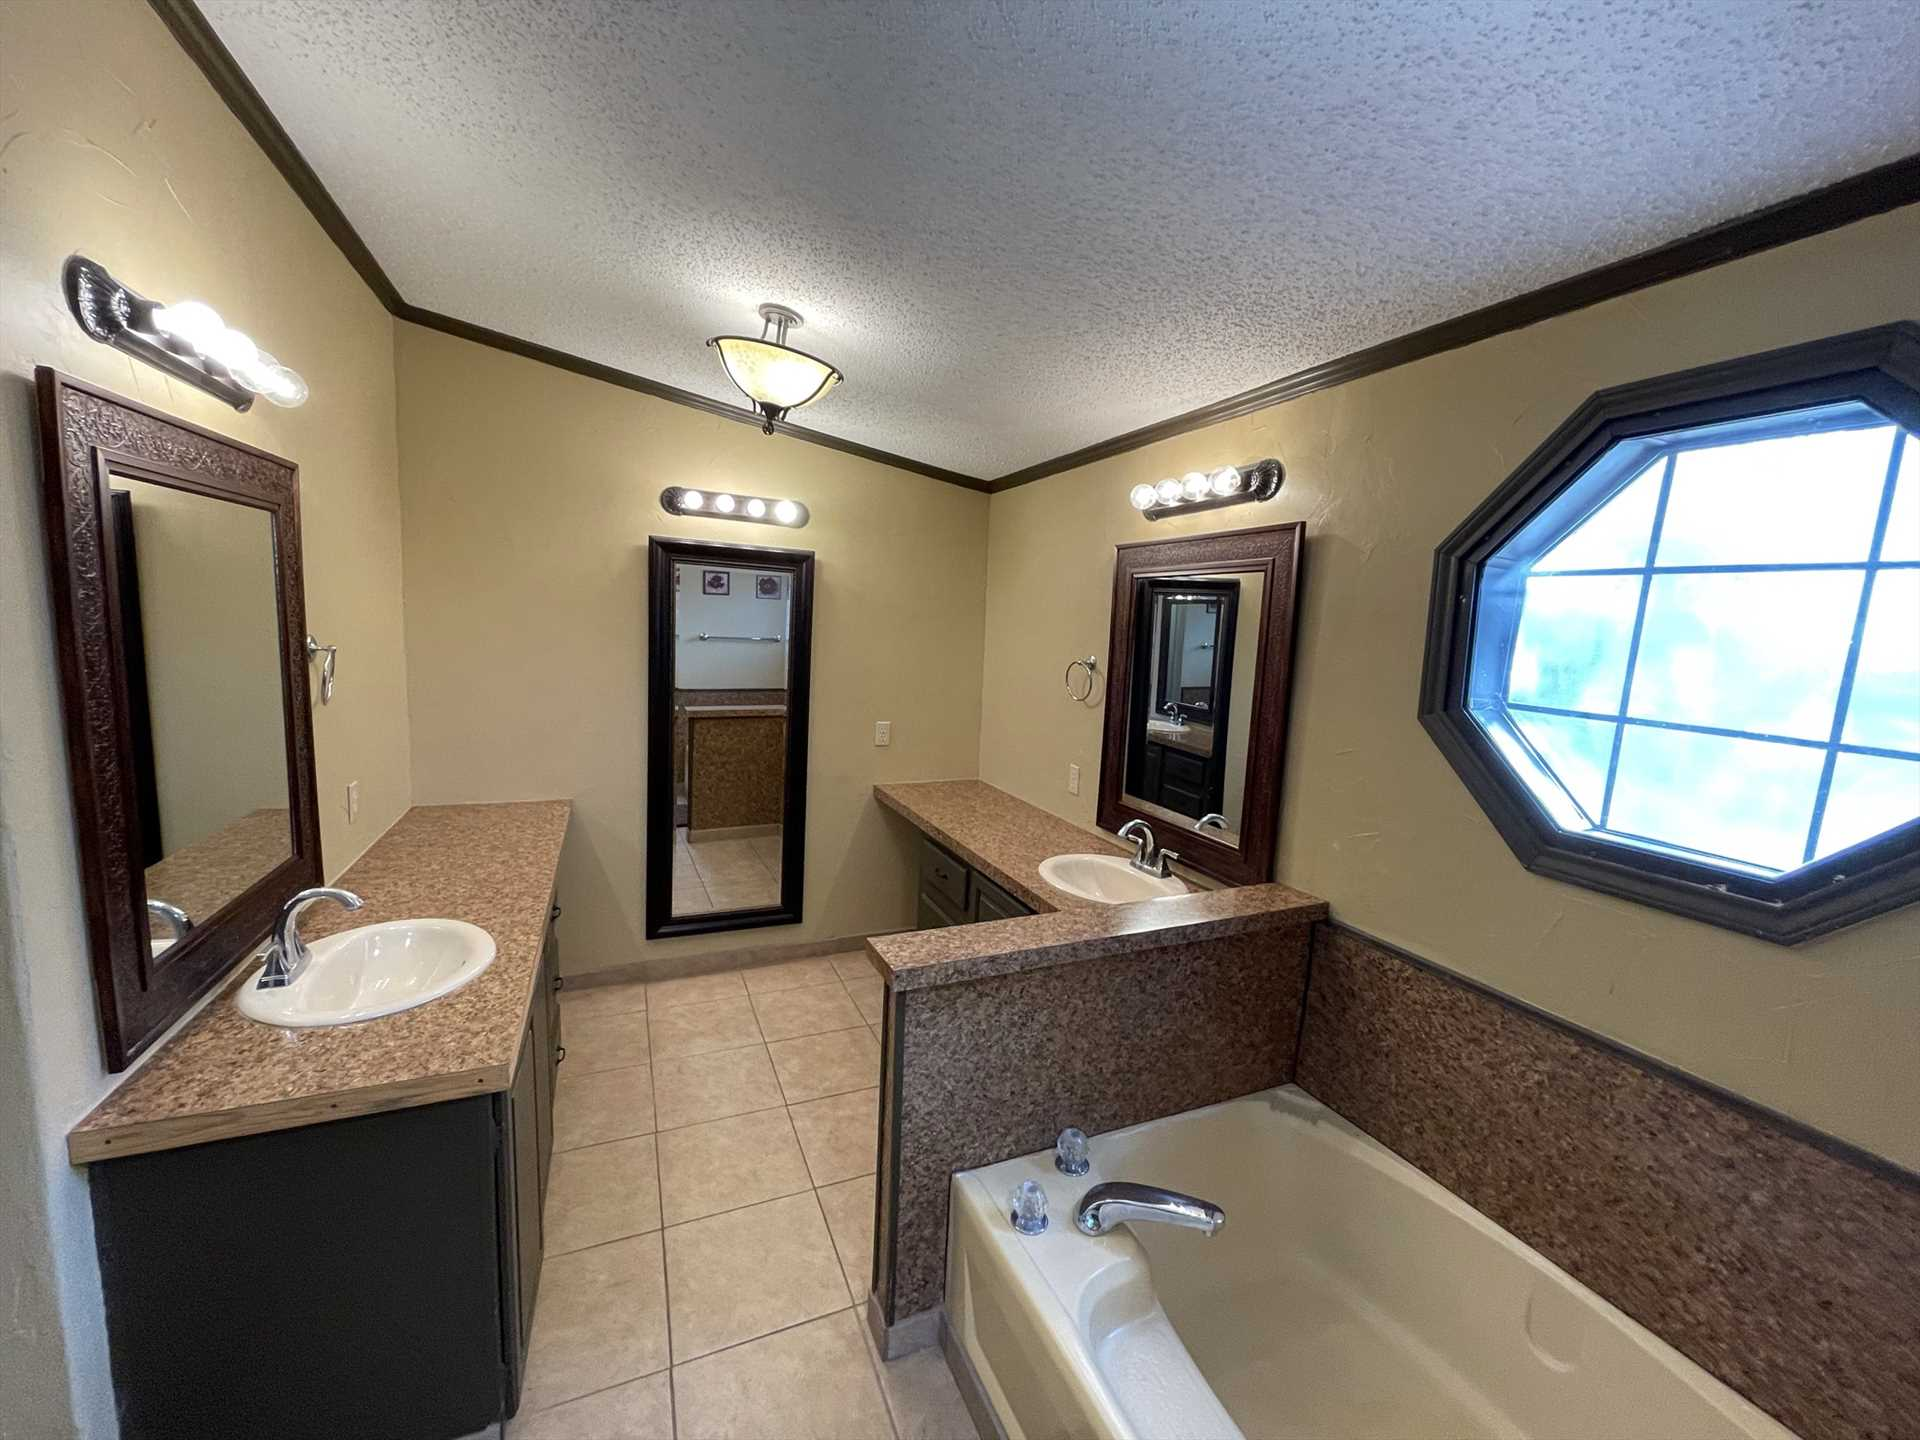 Sharp and modern decor distinguishes the master bath, which includes a roomy tub and separate shower.